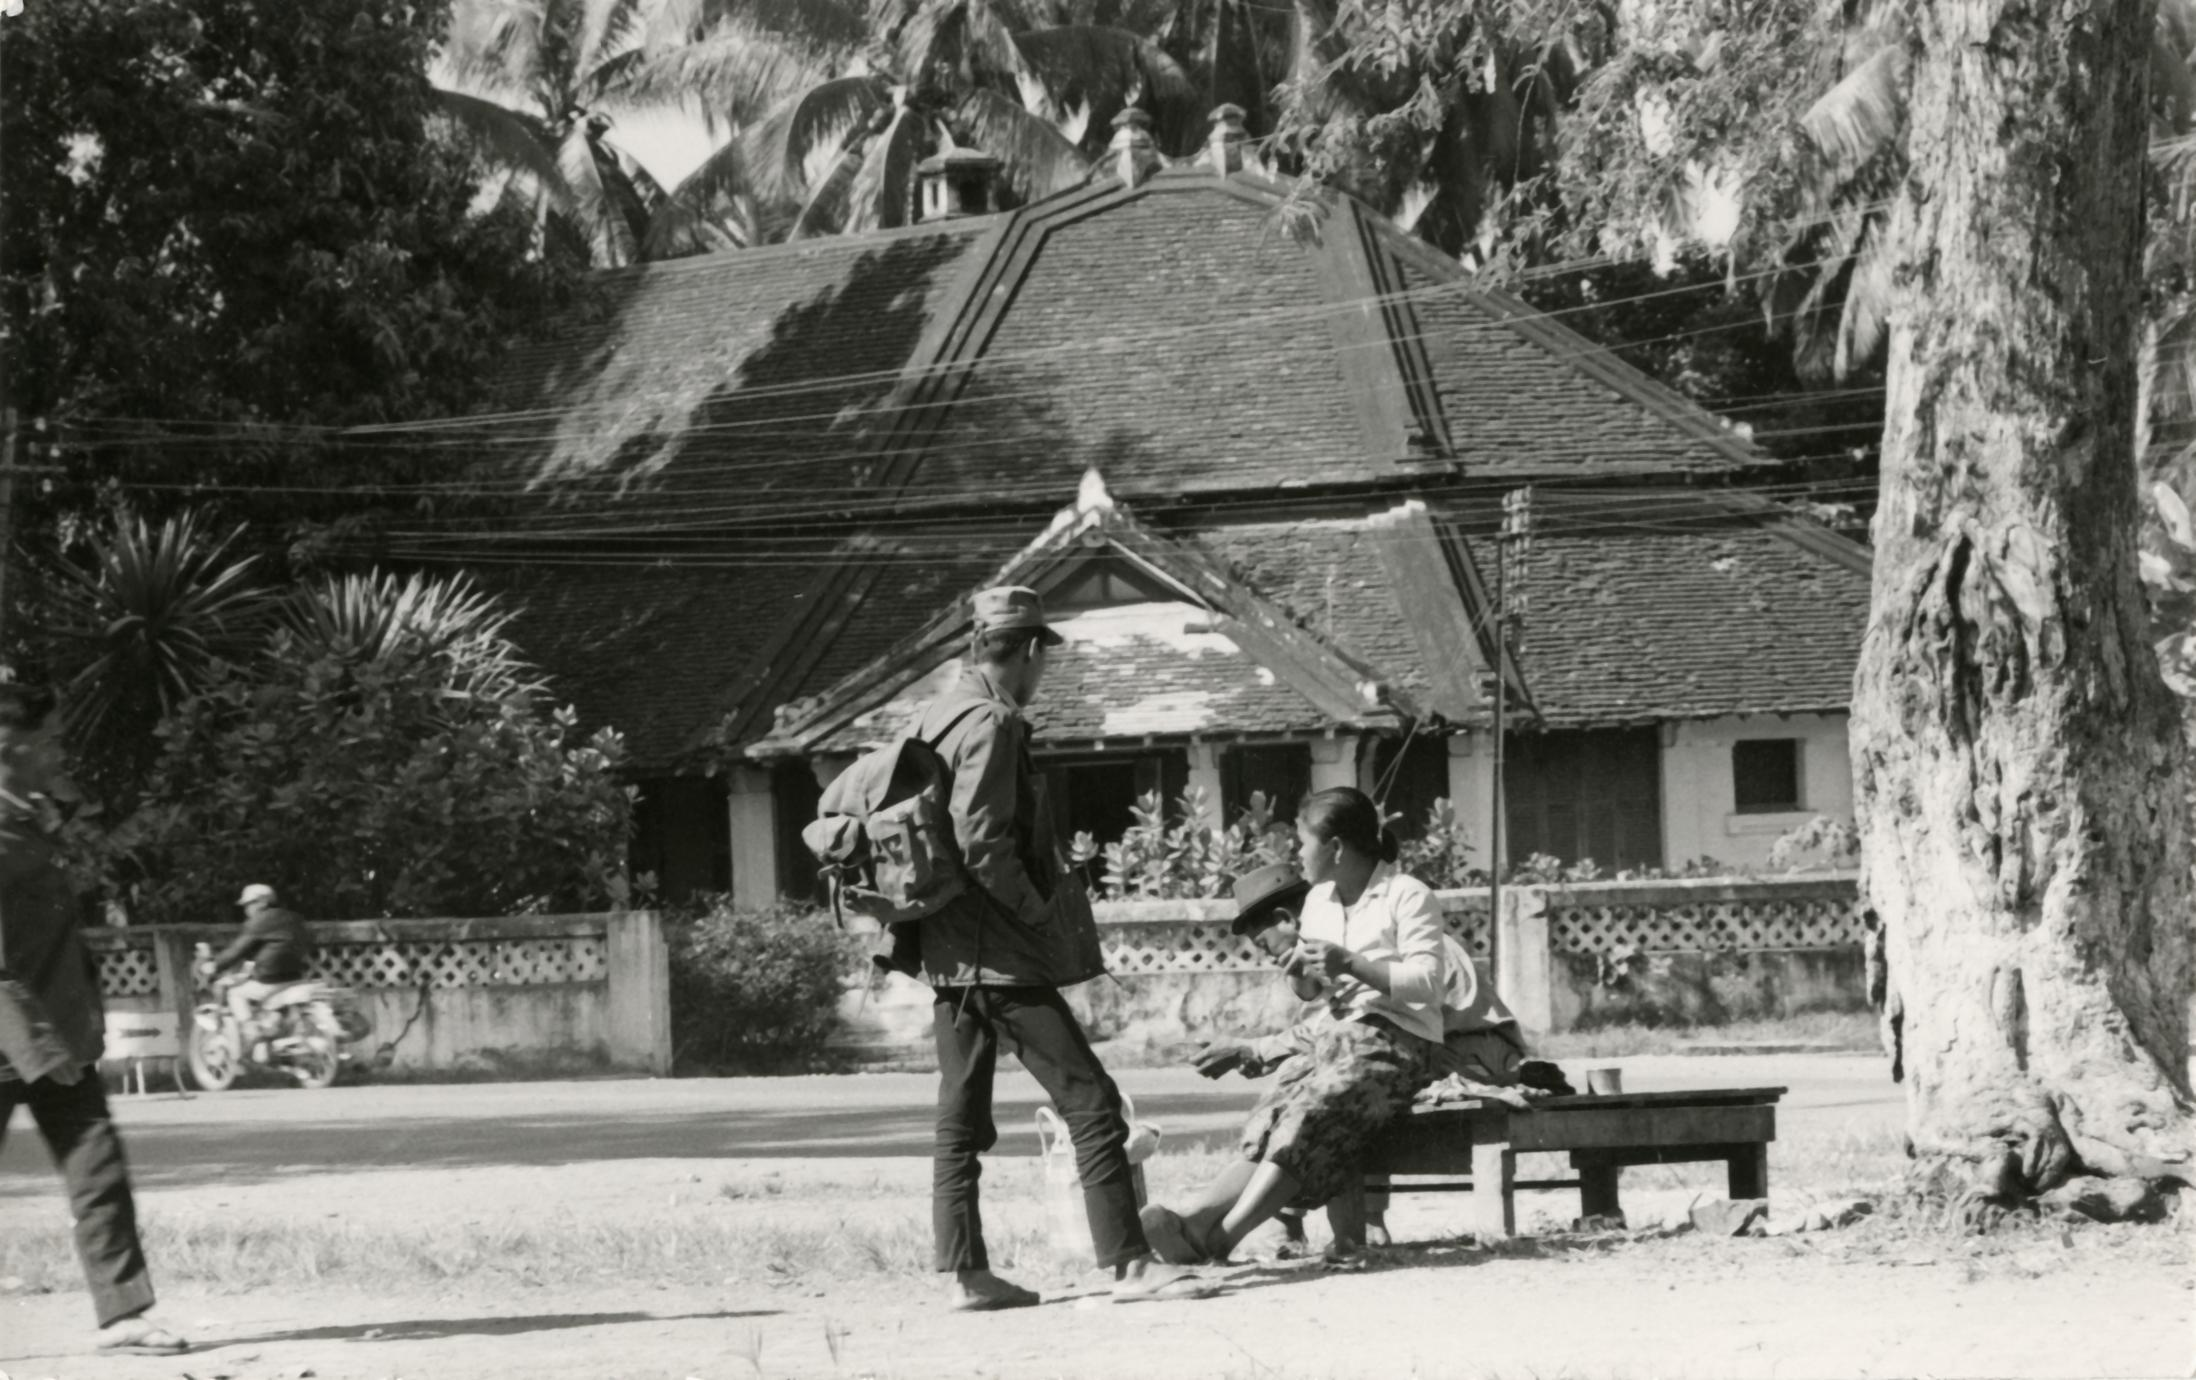 A soldier stands and talks with his wife in the city of Luang Prabang in Luang Prabang Province